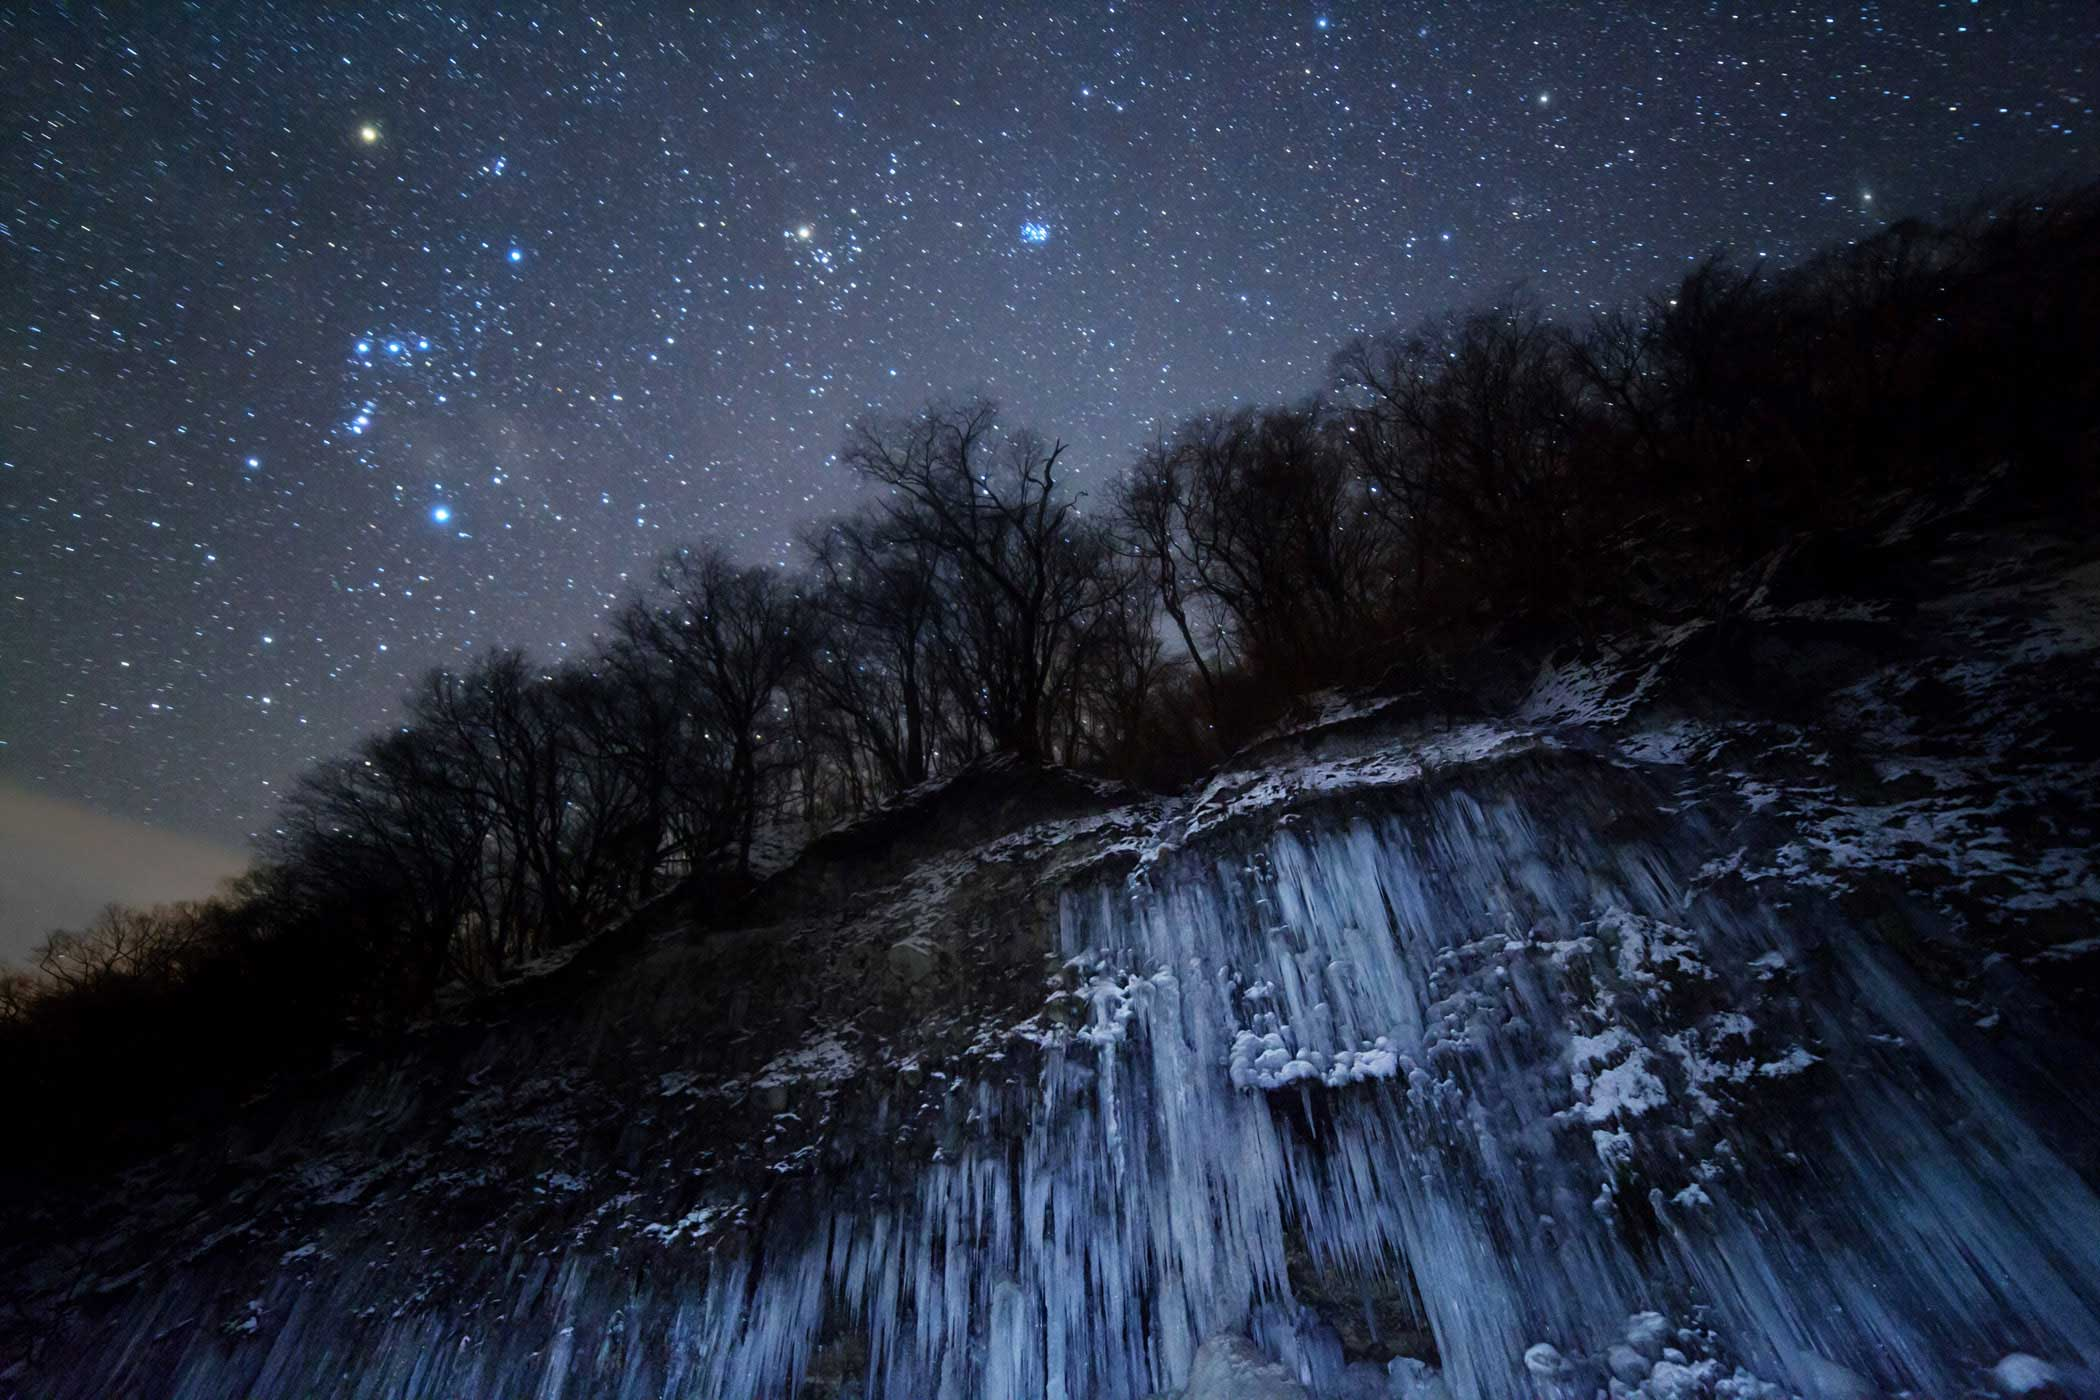 Taken in Nagano, Japan, this image shows Orion, Taurus and the Pleiades as the backdrop to an eerie frozen landscape. Though the stars appear to gleam with a cold, frosty light, bright blue stars like the Pleiades can be as hot as 30,000 degrees Celsius.